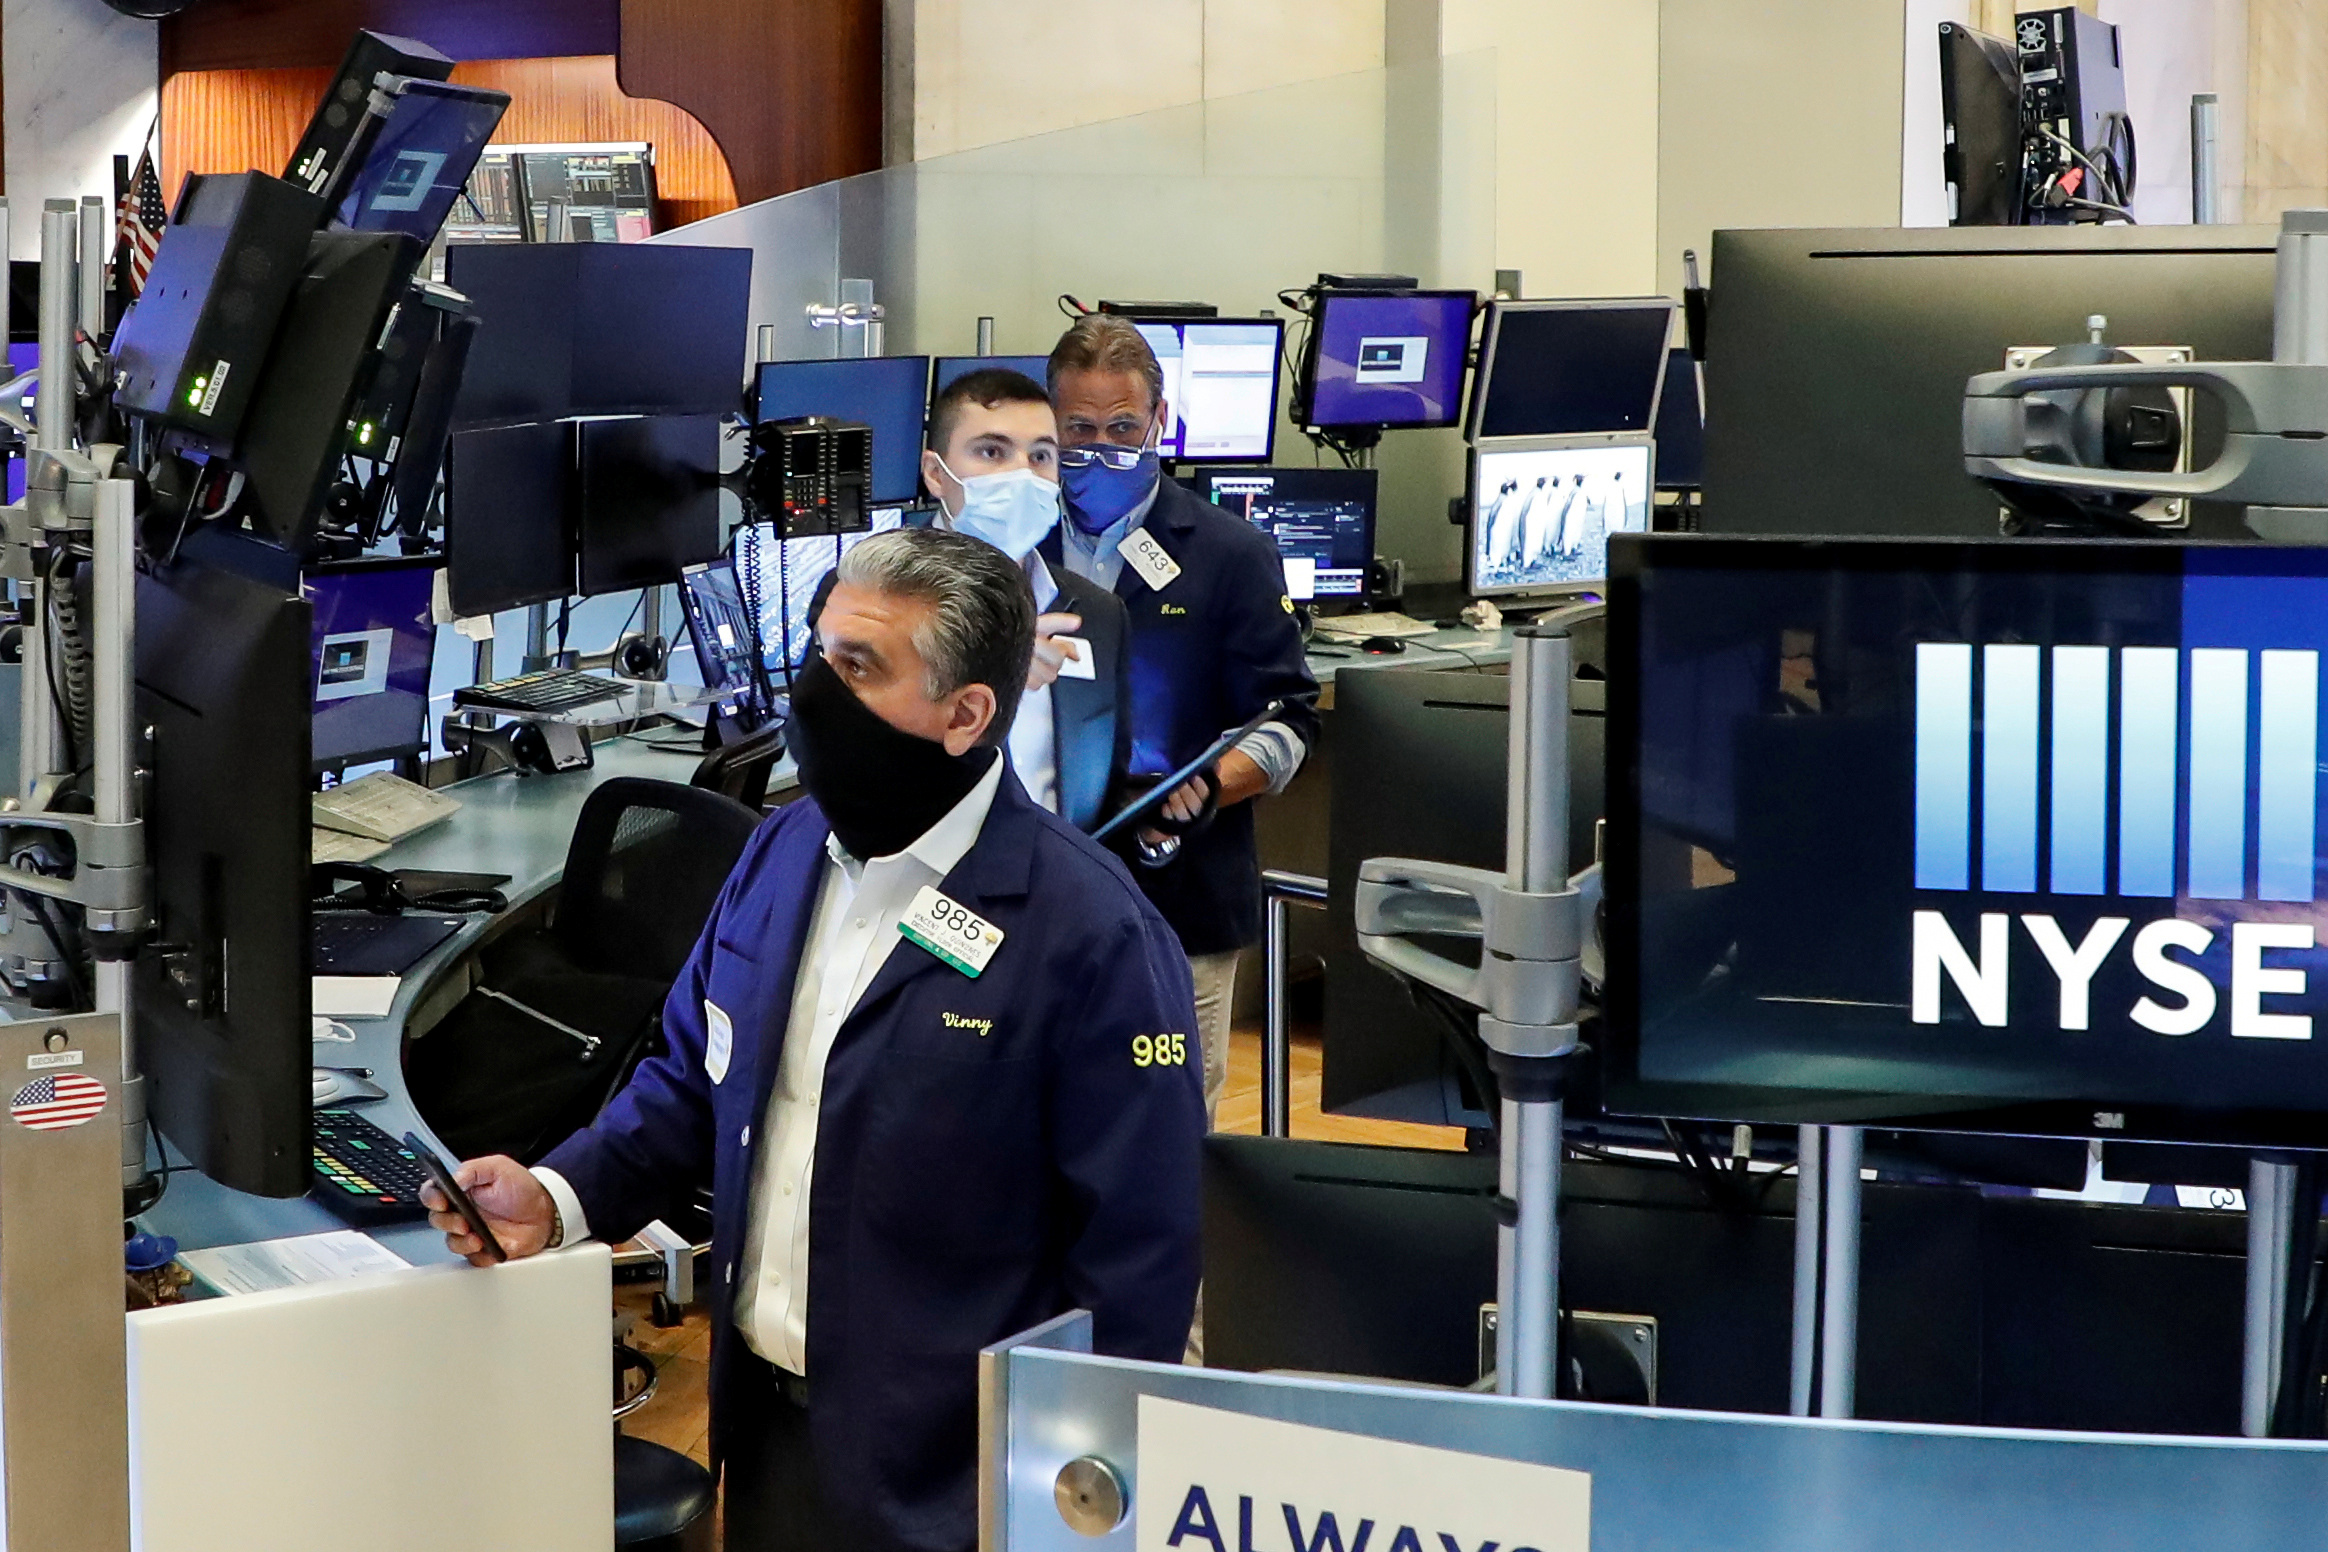 Traders wearing masks work, on the first day of in-person trading since the closure during the outbreak of the coronavirus disease (COVID-19) on the floor at the New York Stock Exchange (NYSE) in New York, U.S., May 26, 2020. REUTERS/Brendan McDermid